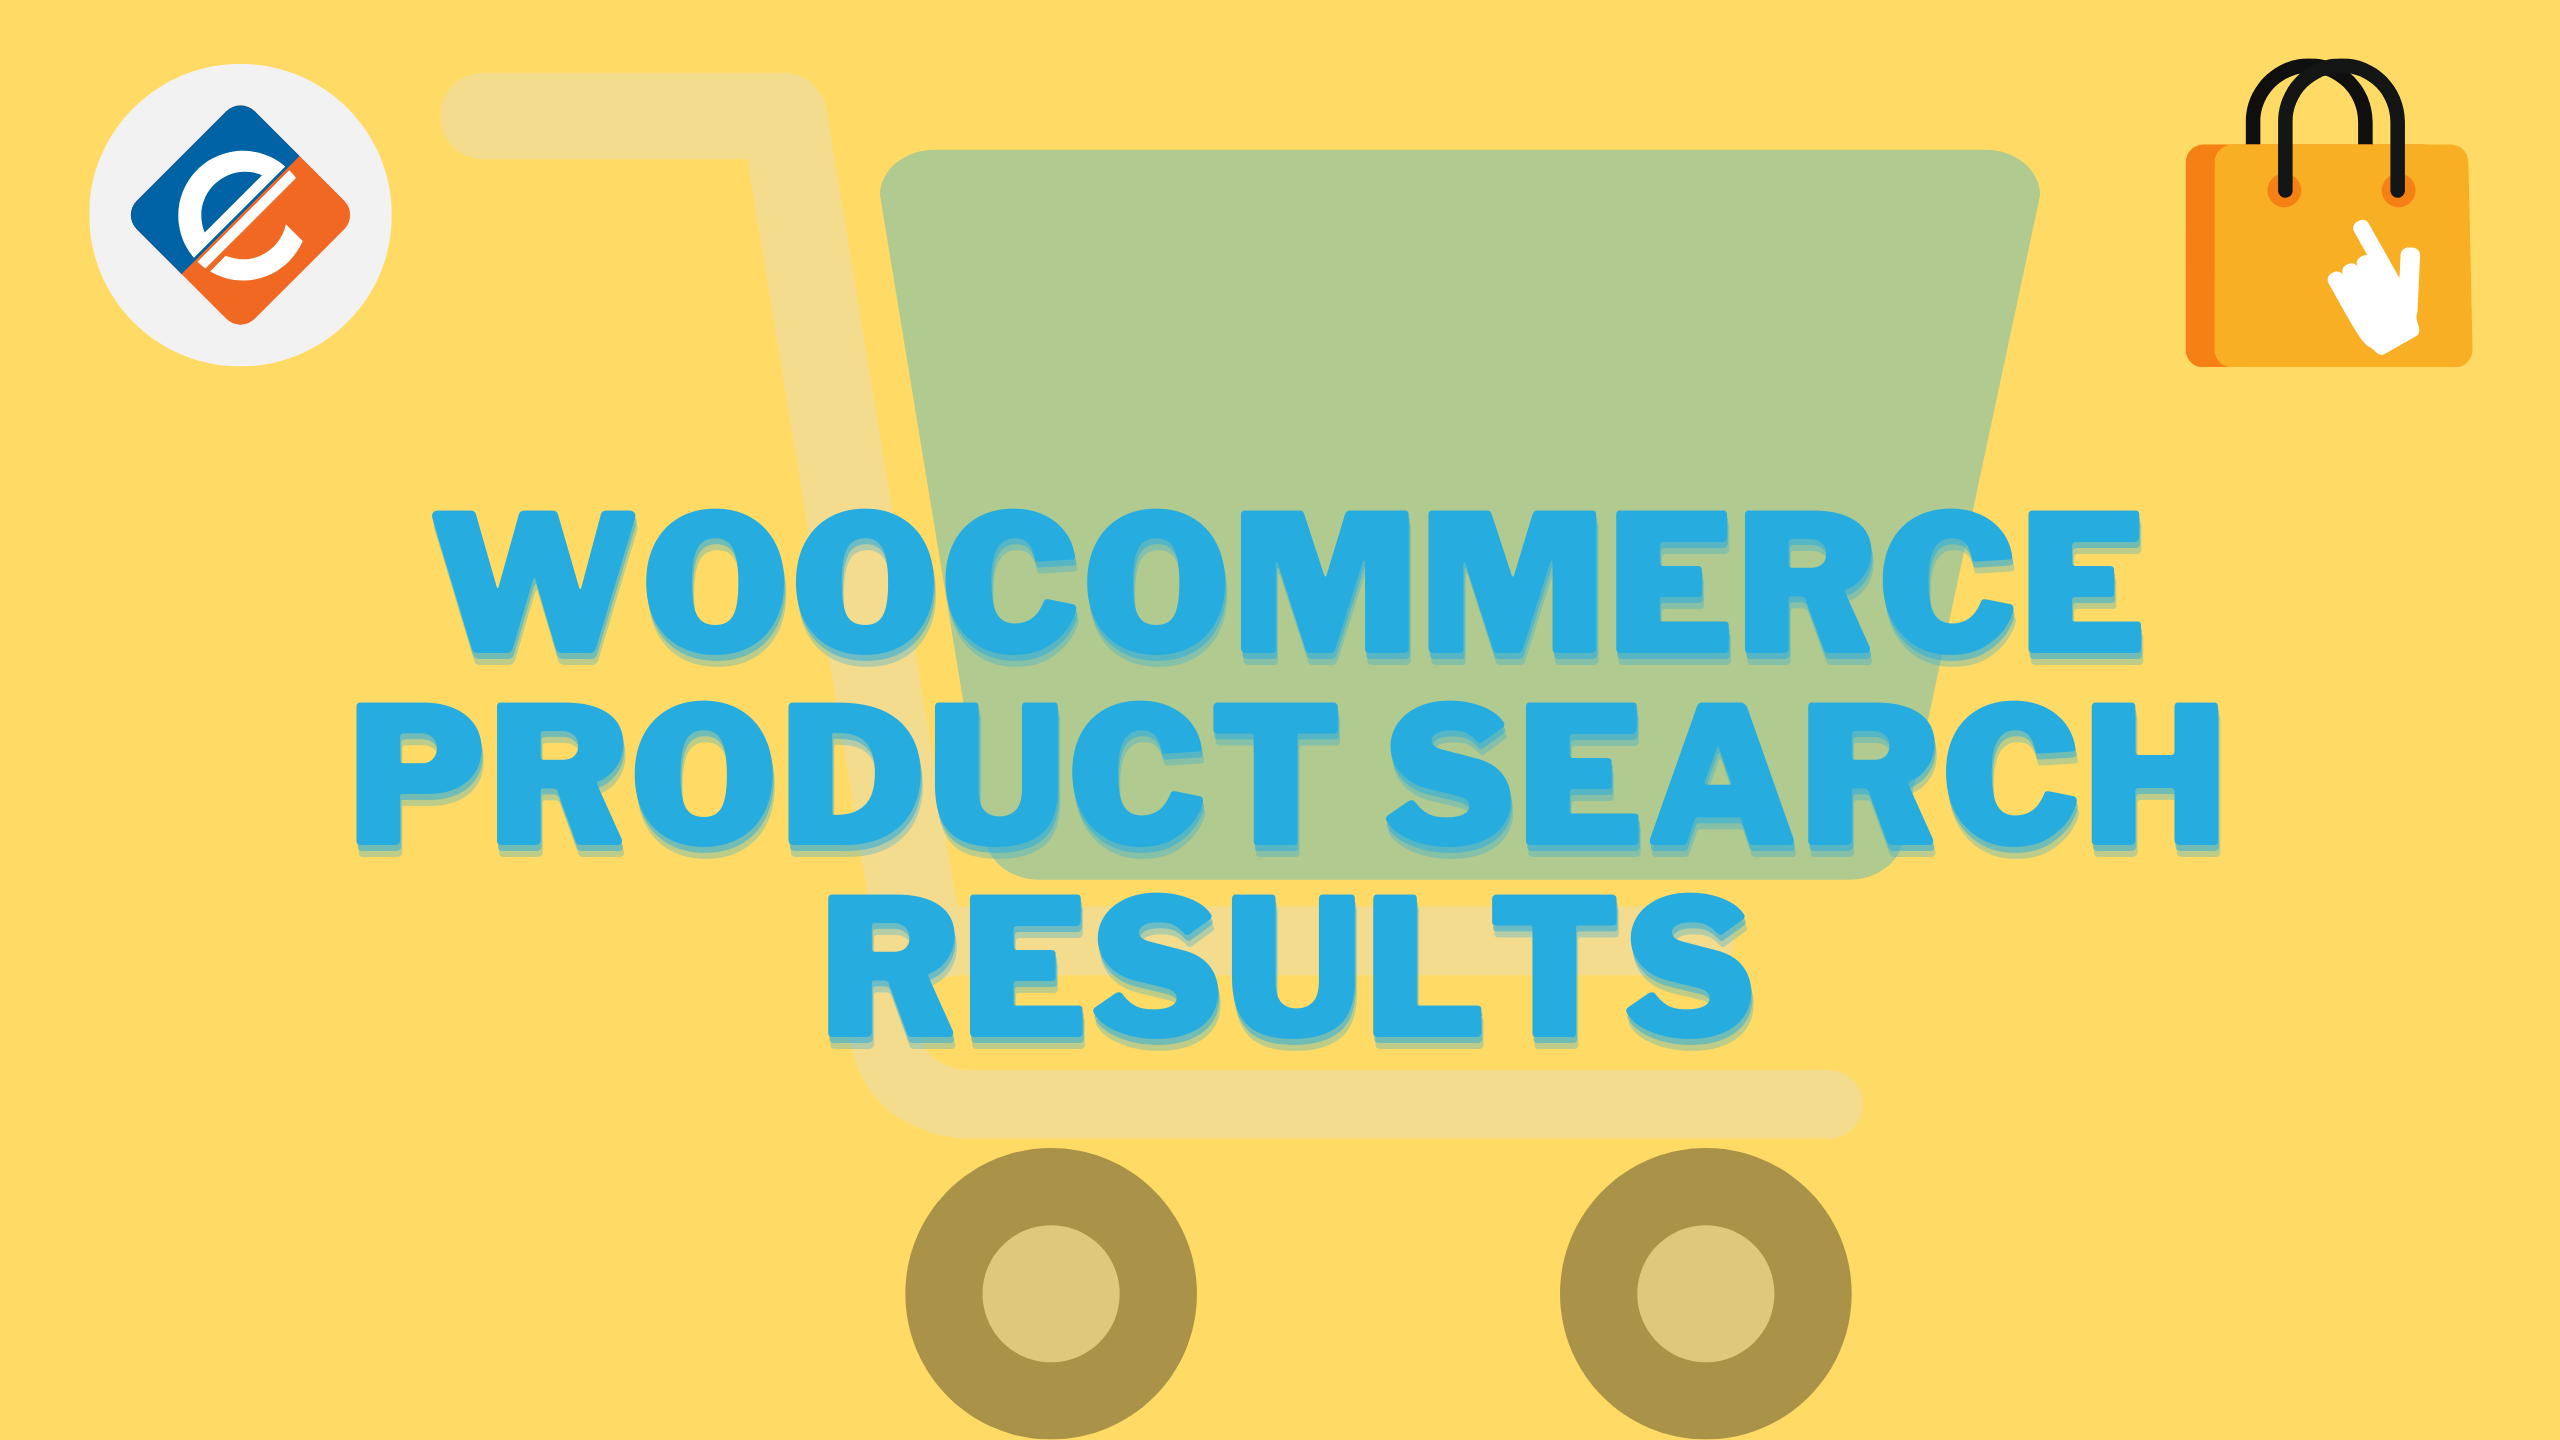 Woocommerce Product Search Results